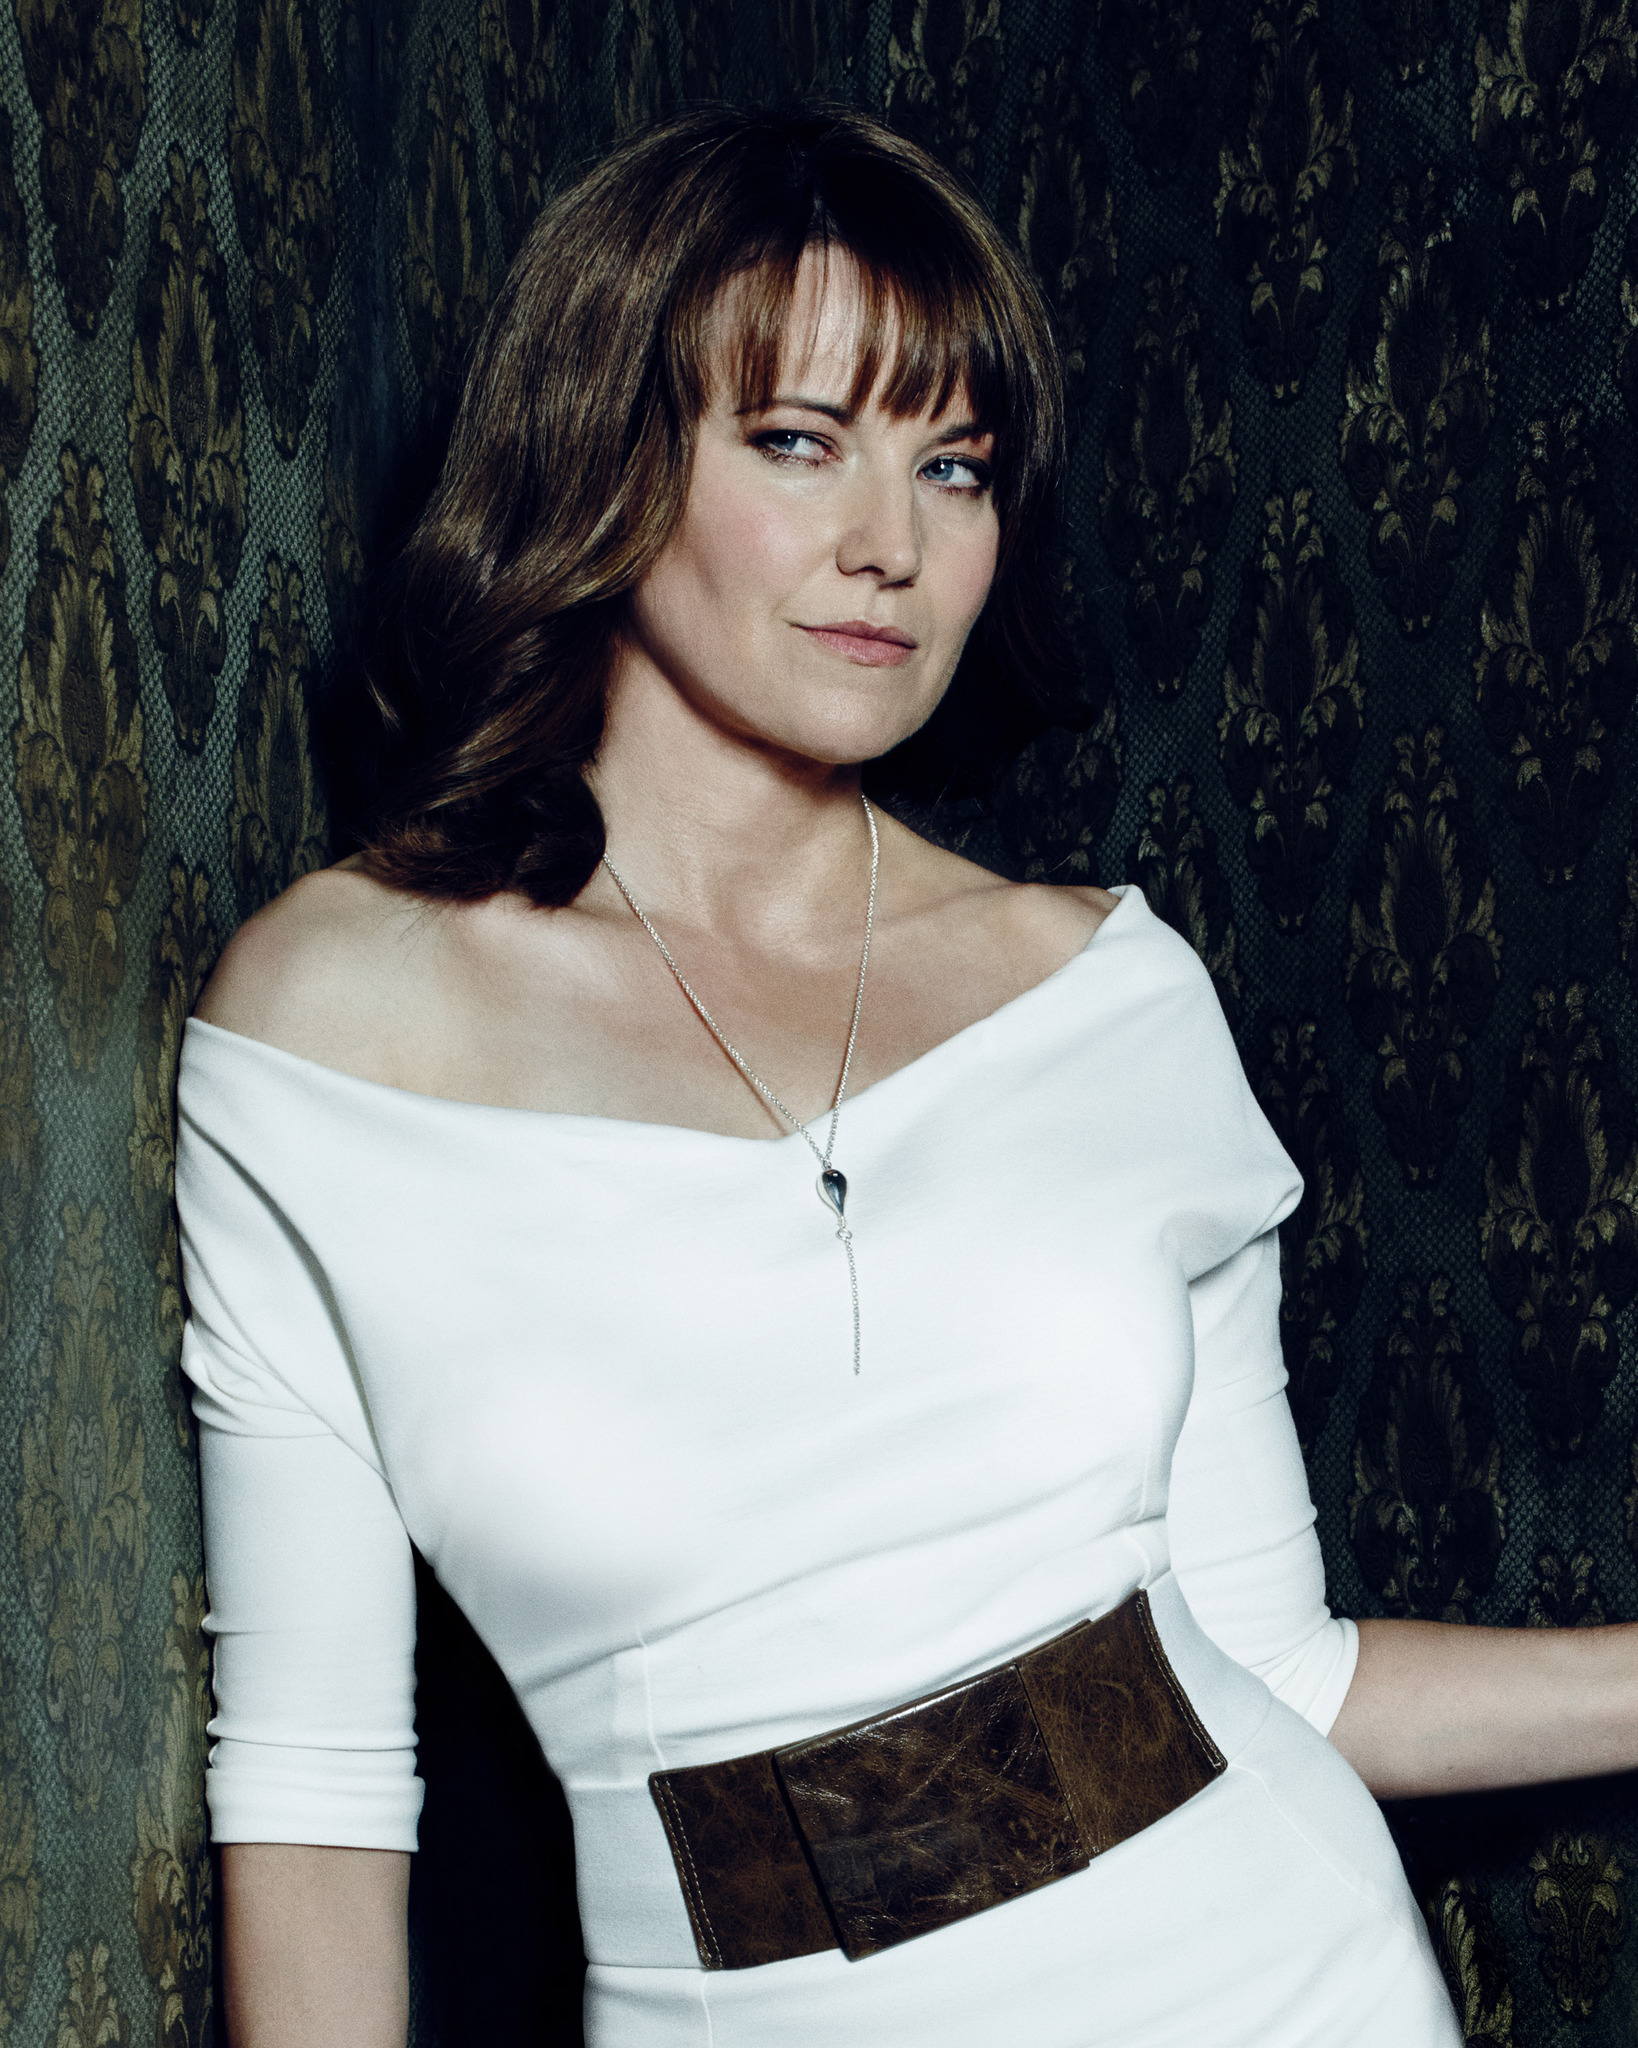 Lucy Lawless Imdb